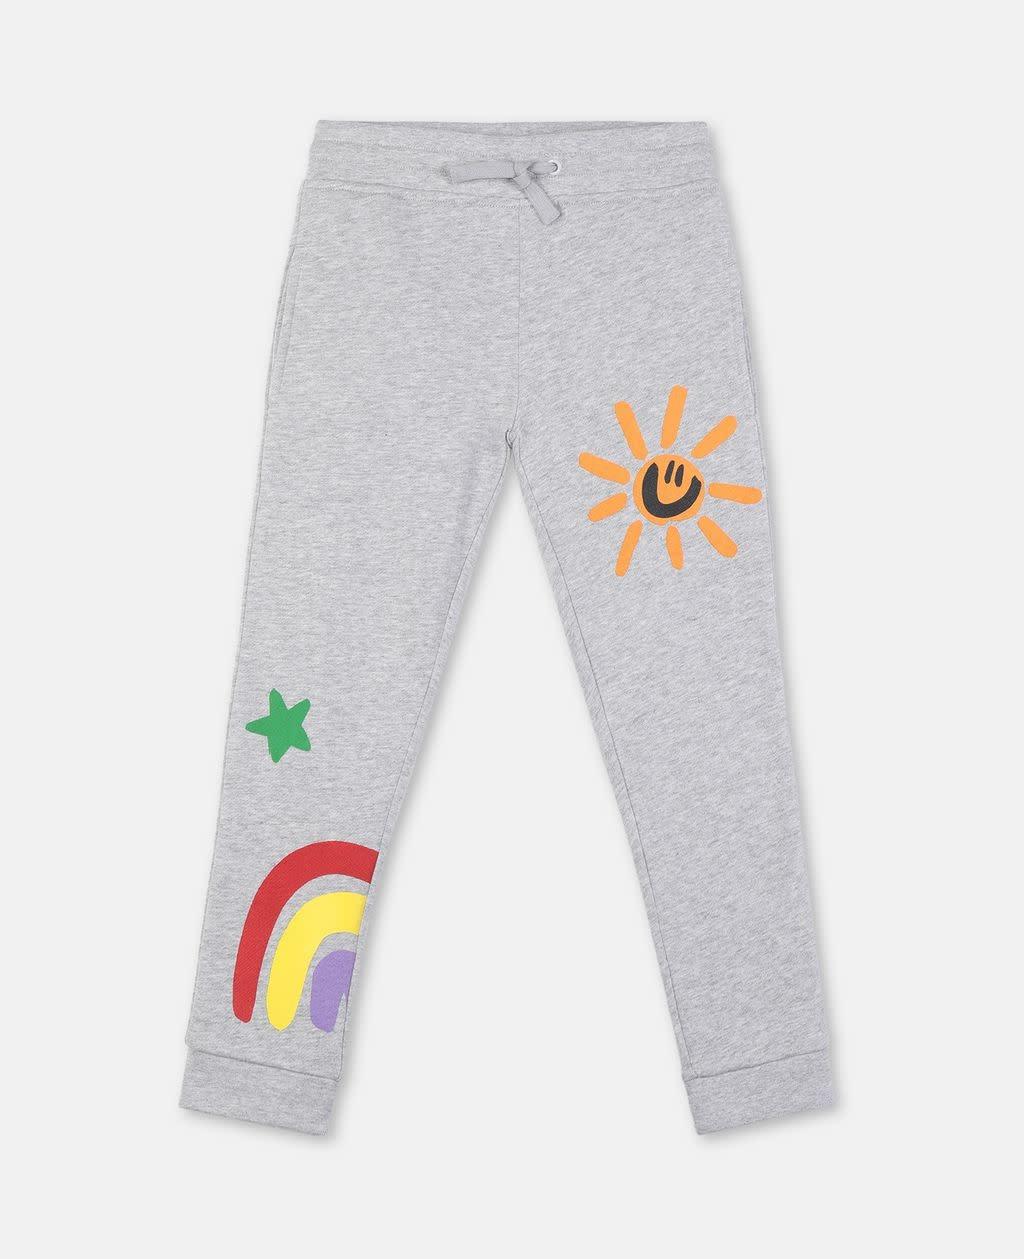 STELLA MCCARTNEY Crayon Weather Joggers